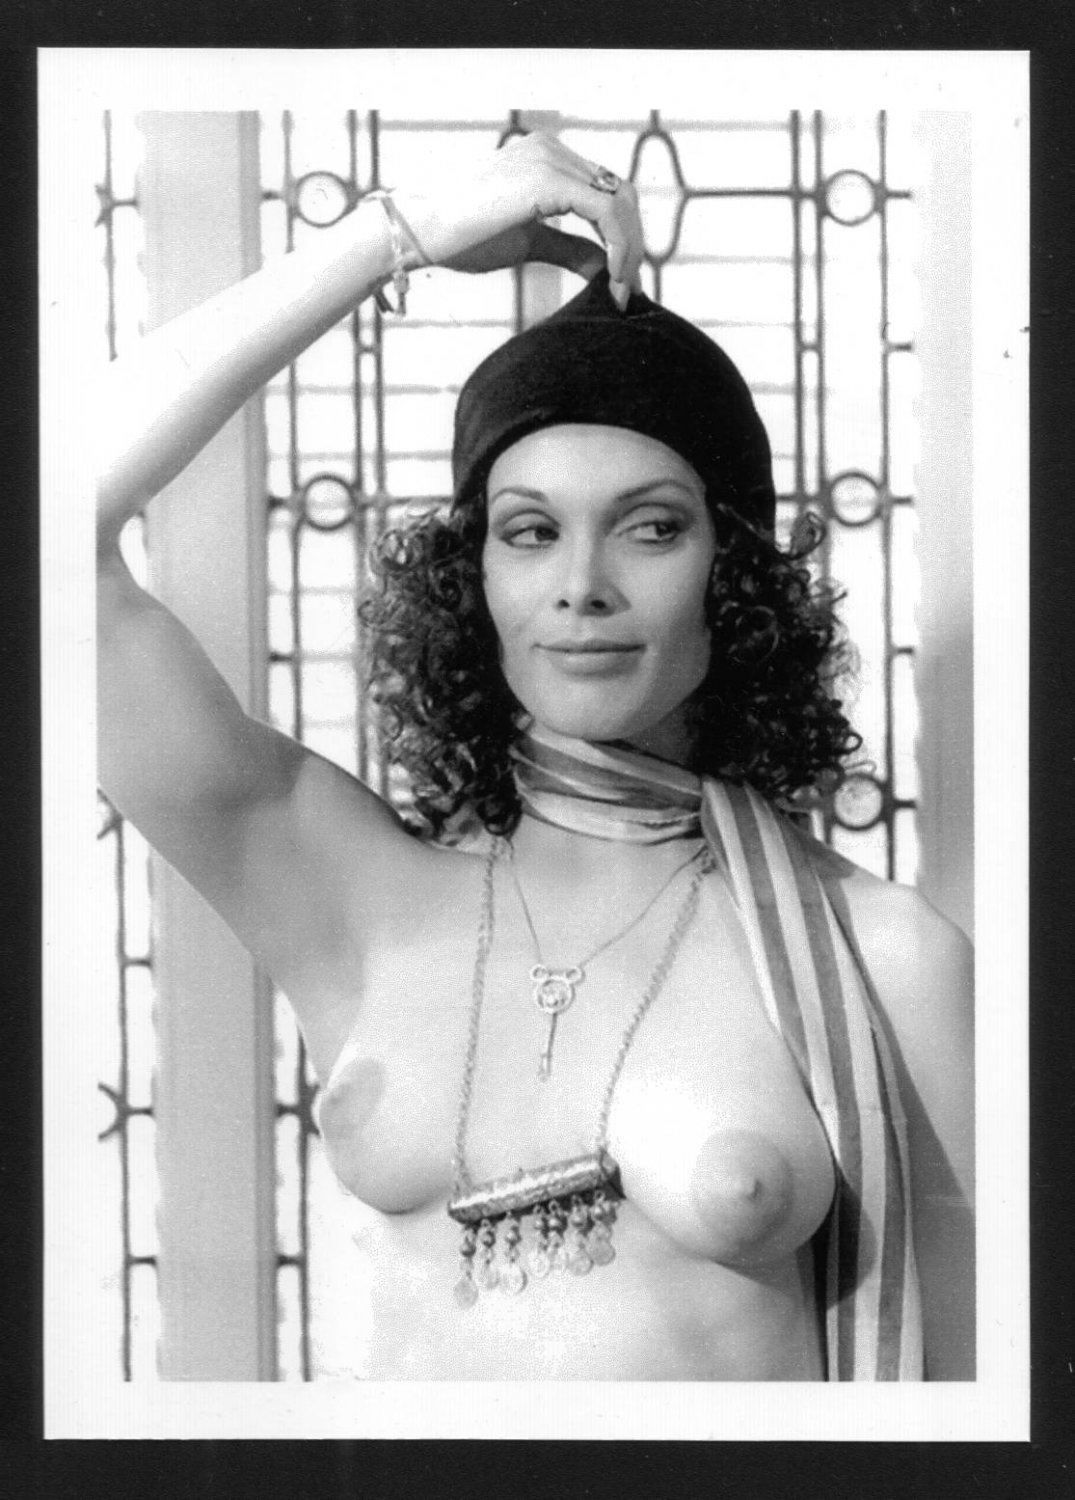 THUNDERBALL ACTRESS MARTINE BESWICK TOPLESS HUGE NUDE BREASTS NEW REPRINT 5 X 7  #1